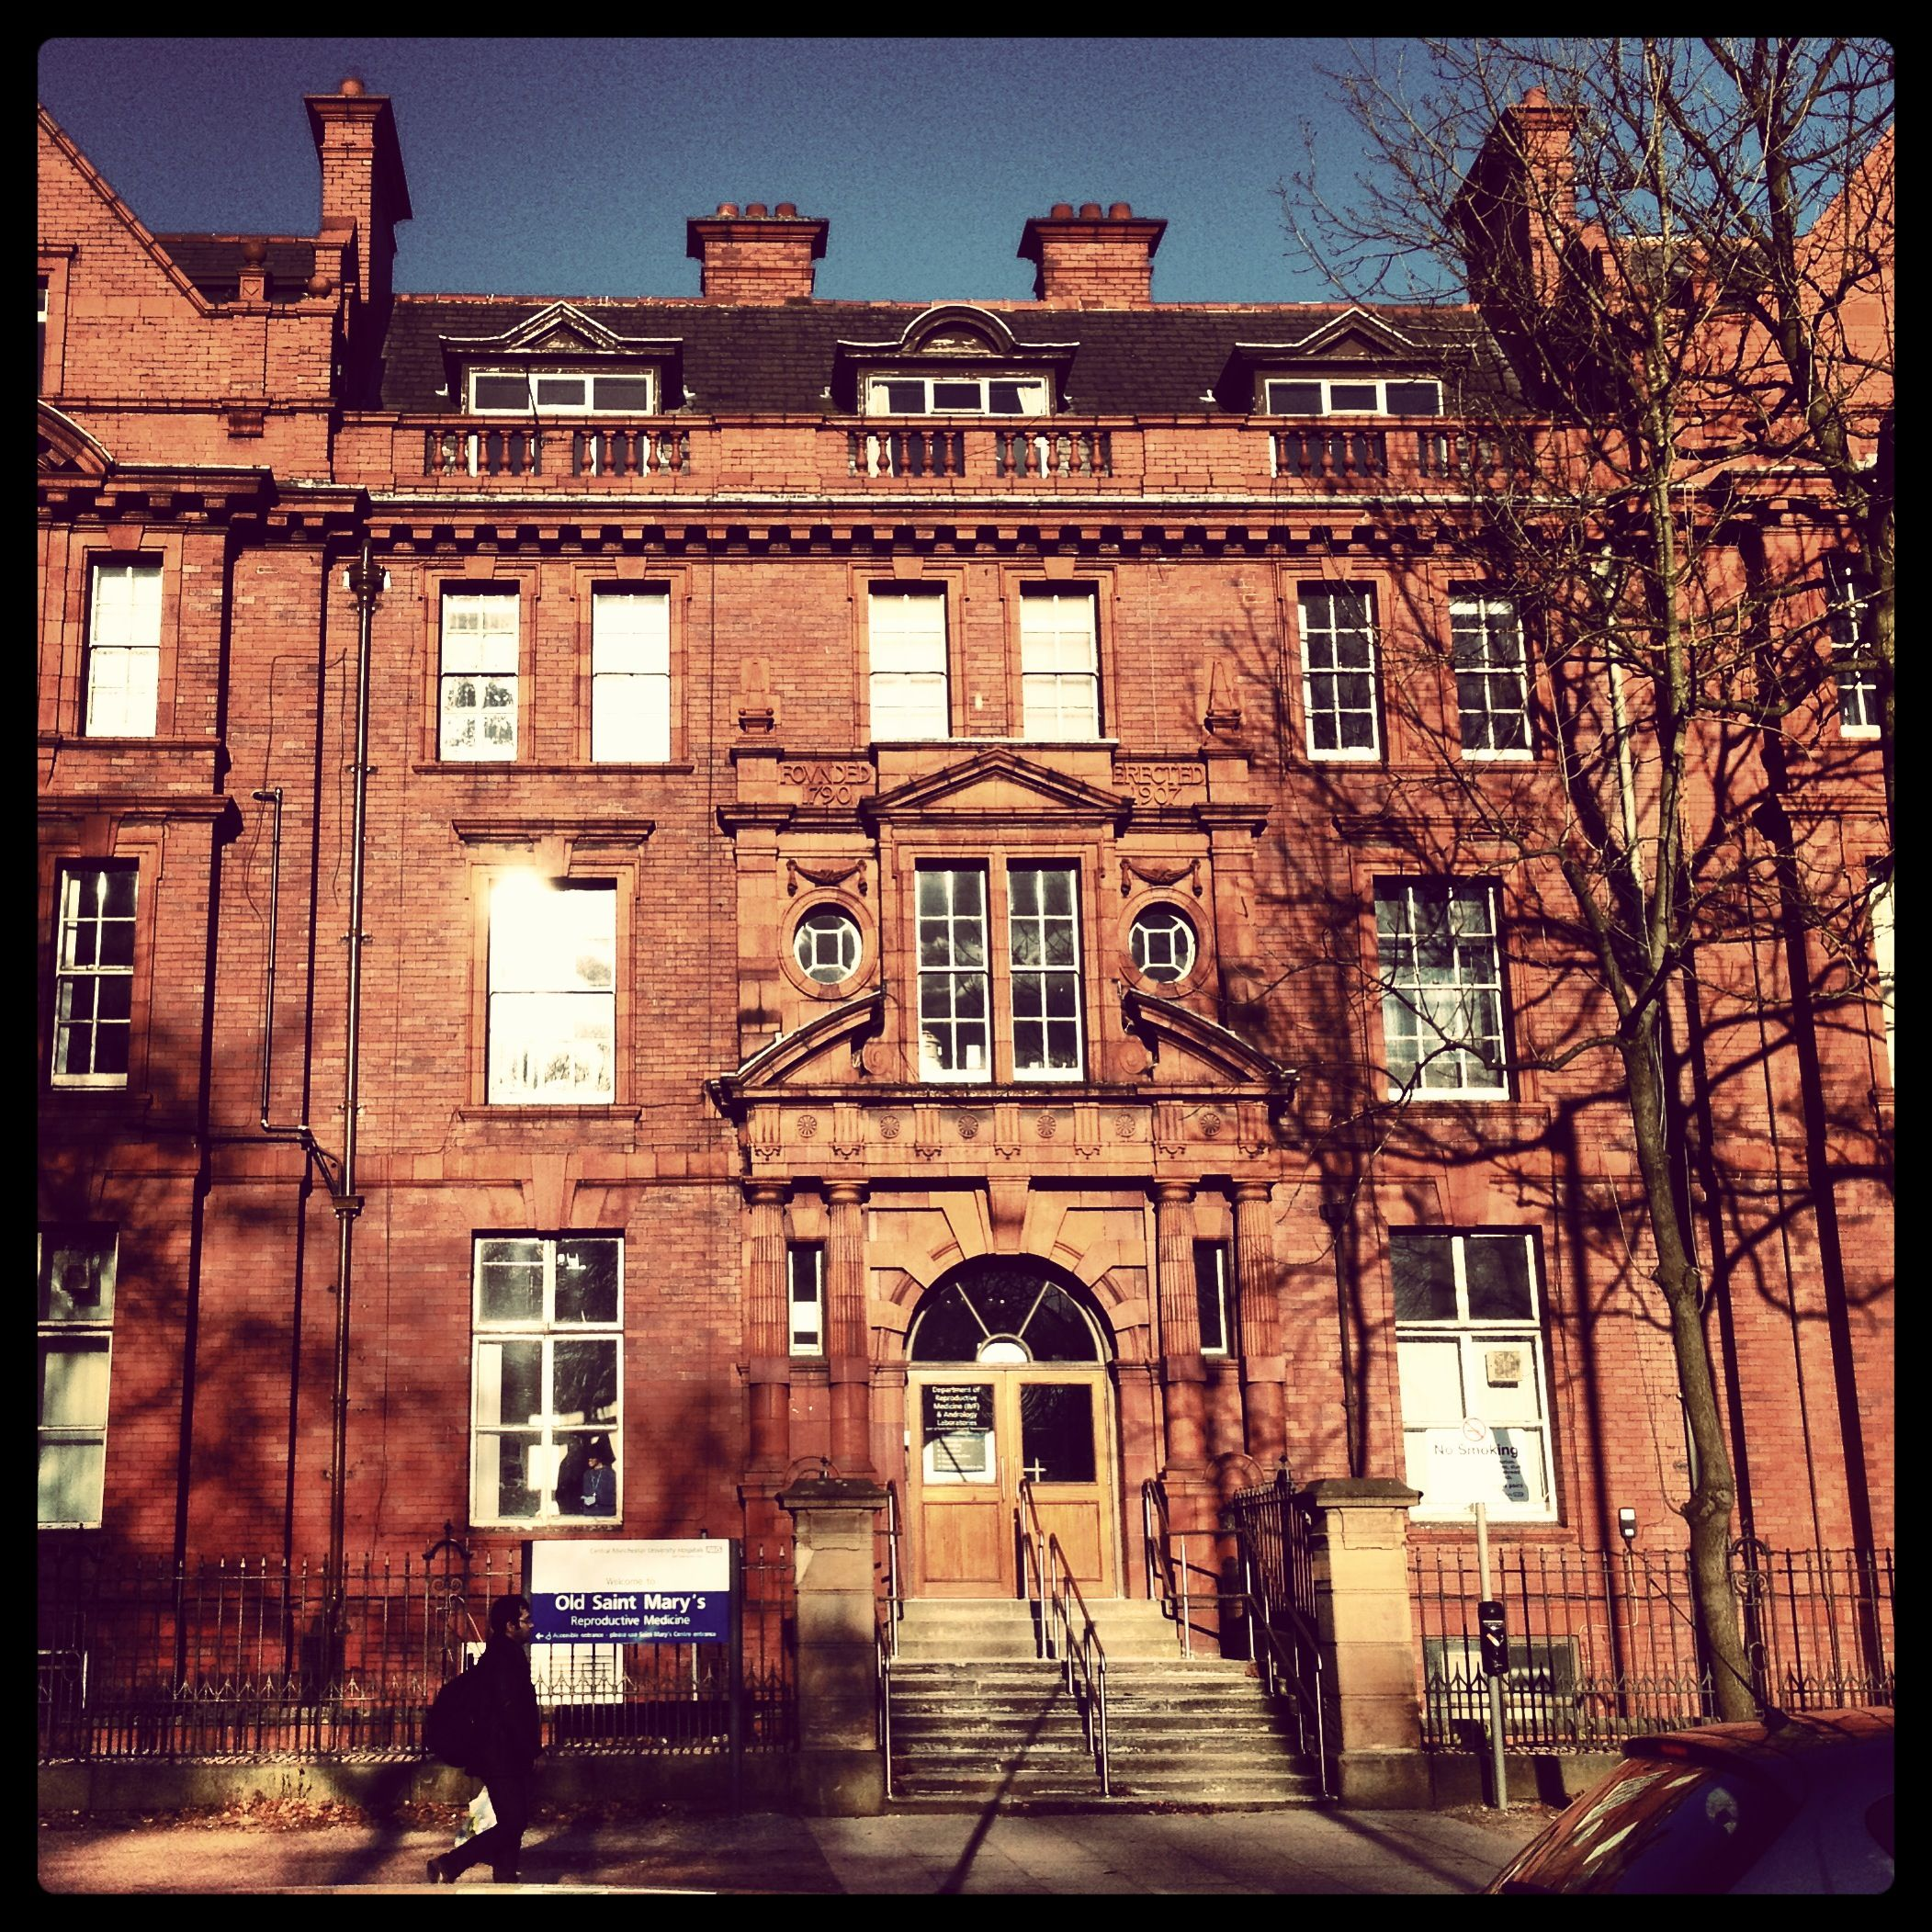 St Mary's Hospital In Manchester